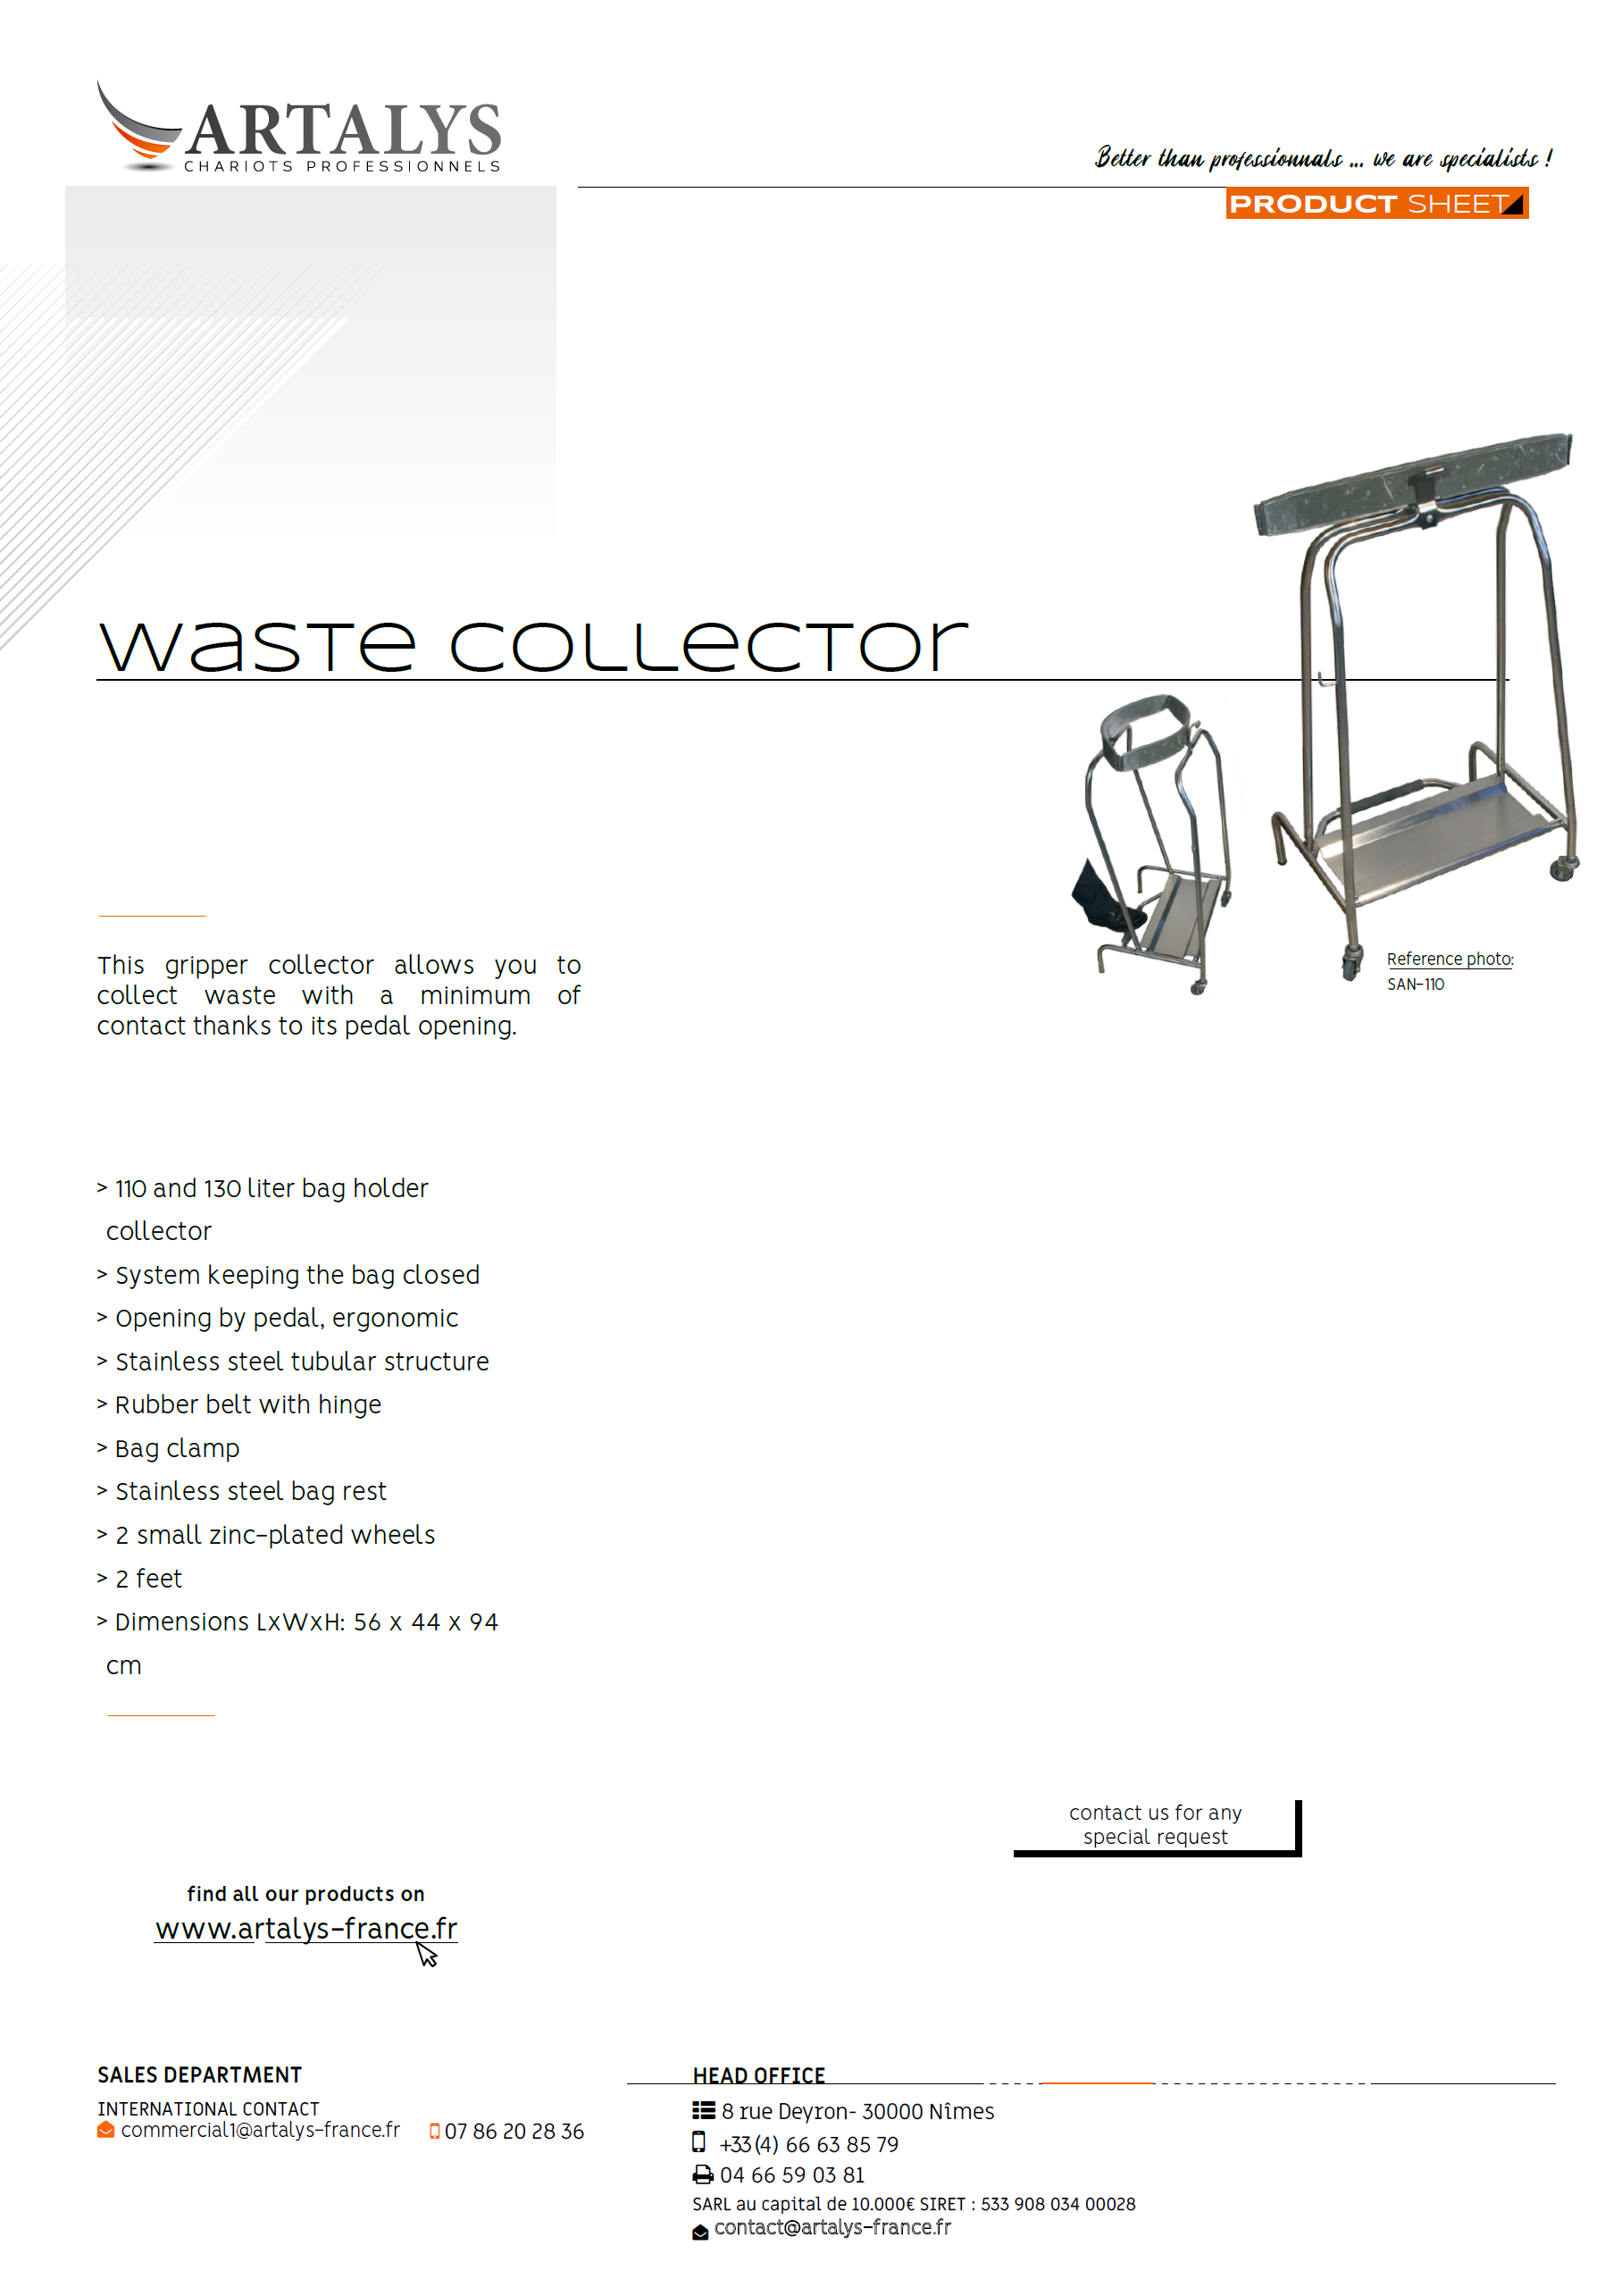 Product sheet of our waste collector